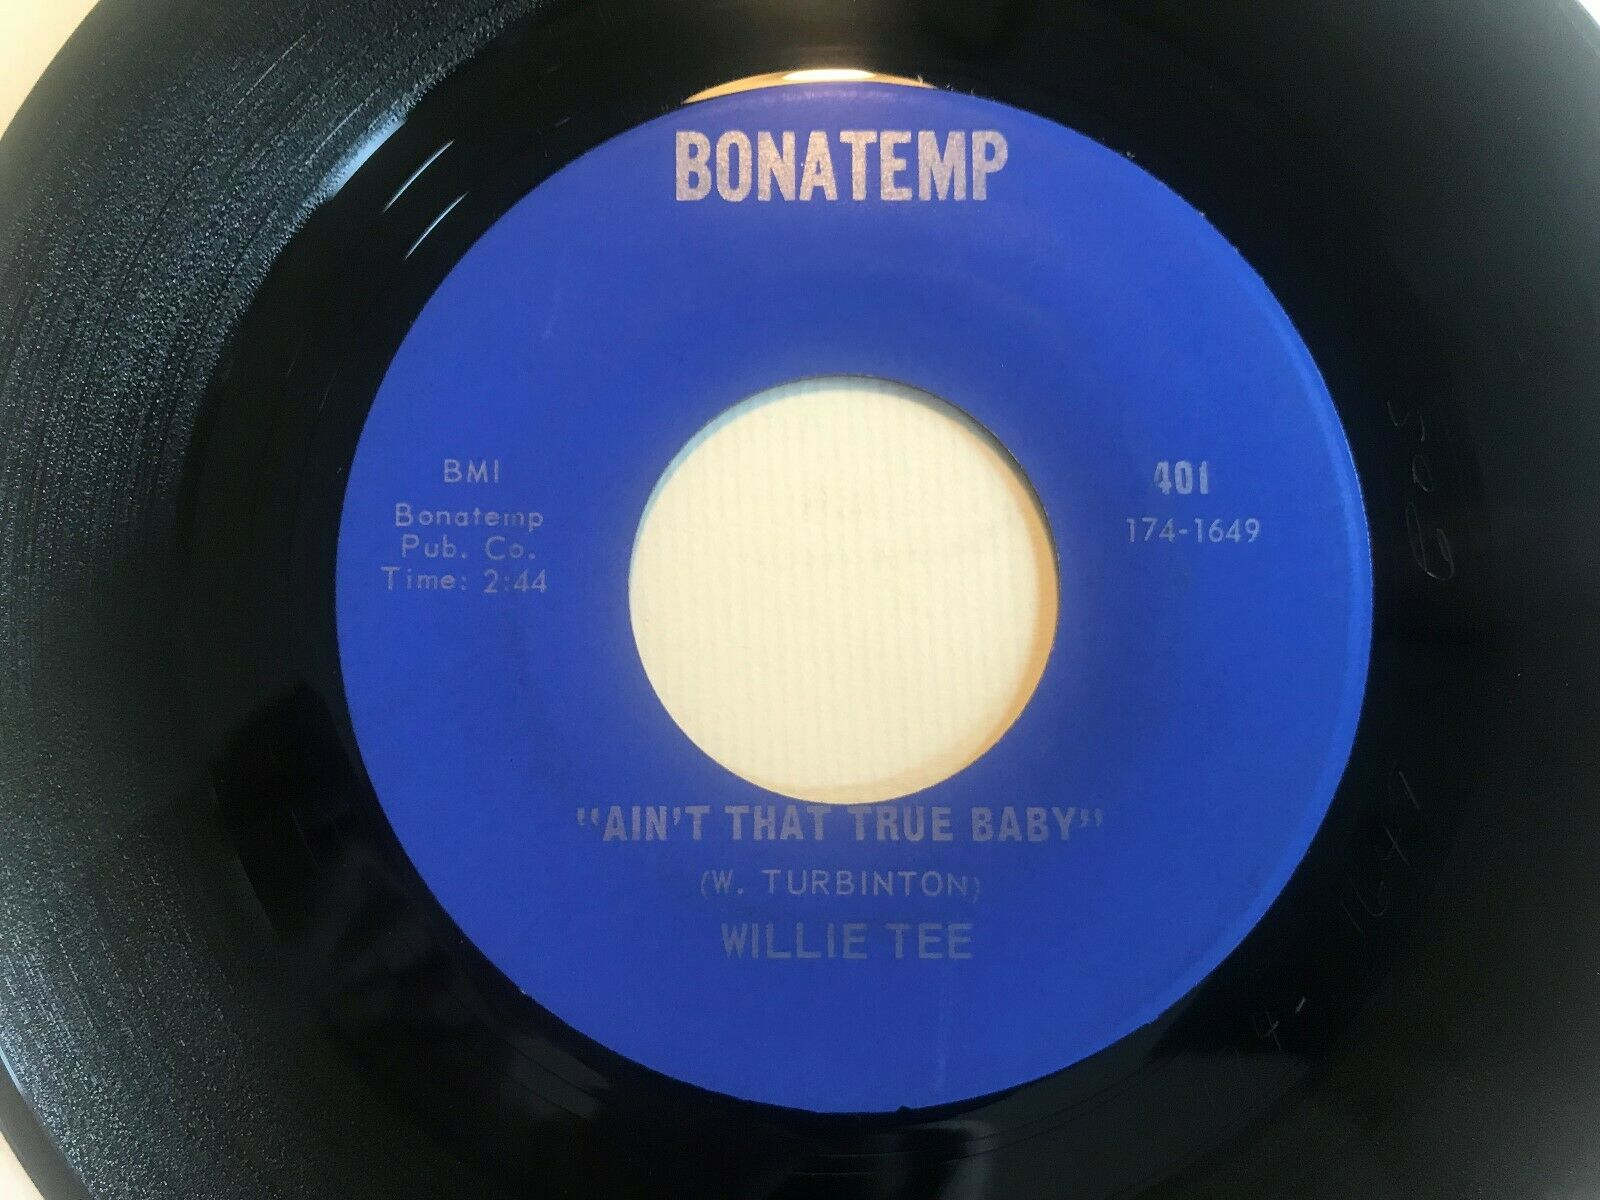 """WILLIE TEE You gonna pay some dues US 7"""" BONATEMP 401 HOLY GRAIL SOUL NM"""